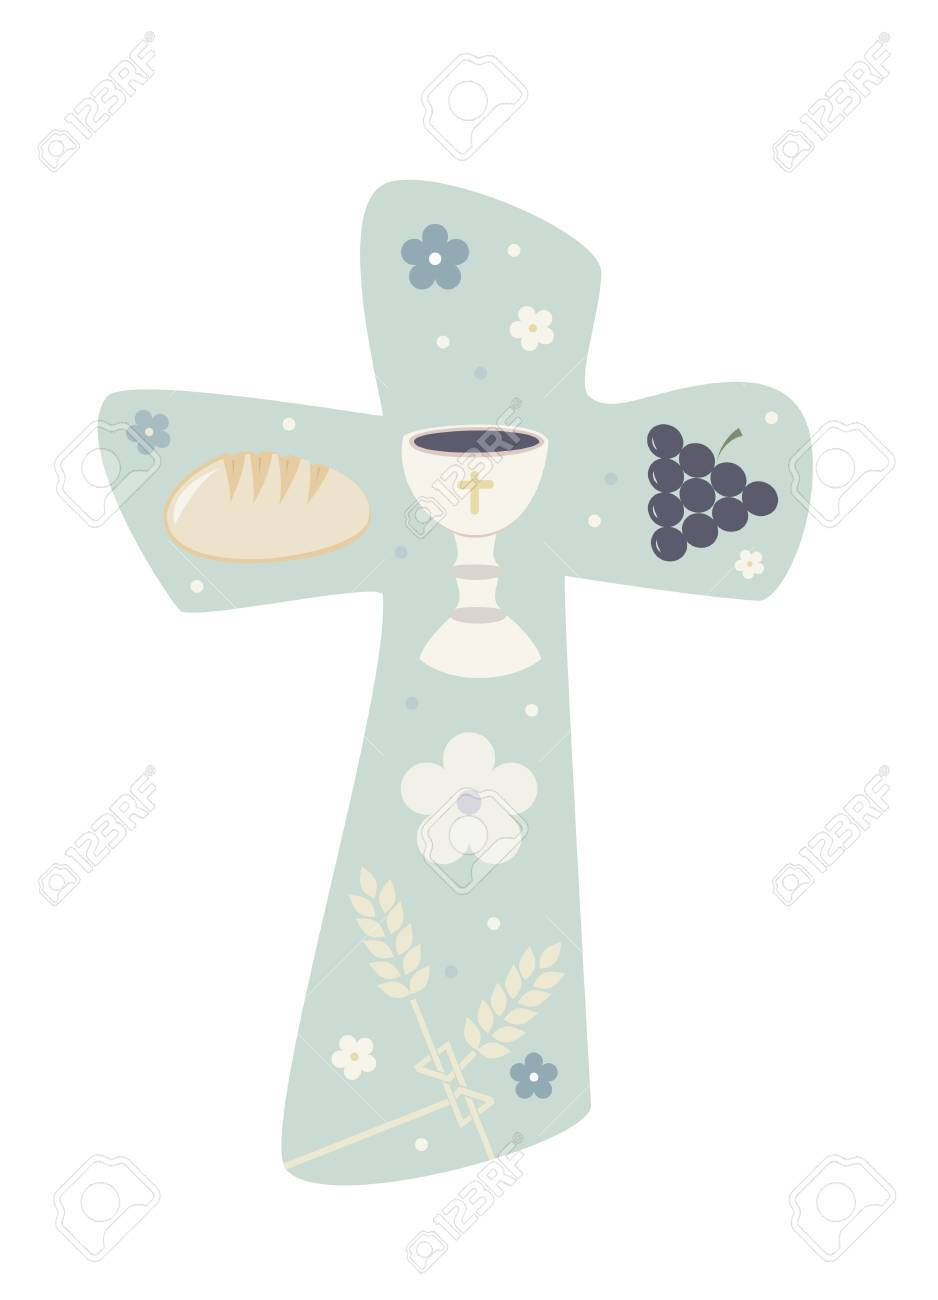 Christian cross with chalky bread and wheat illustration. - 89173522